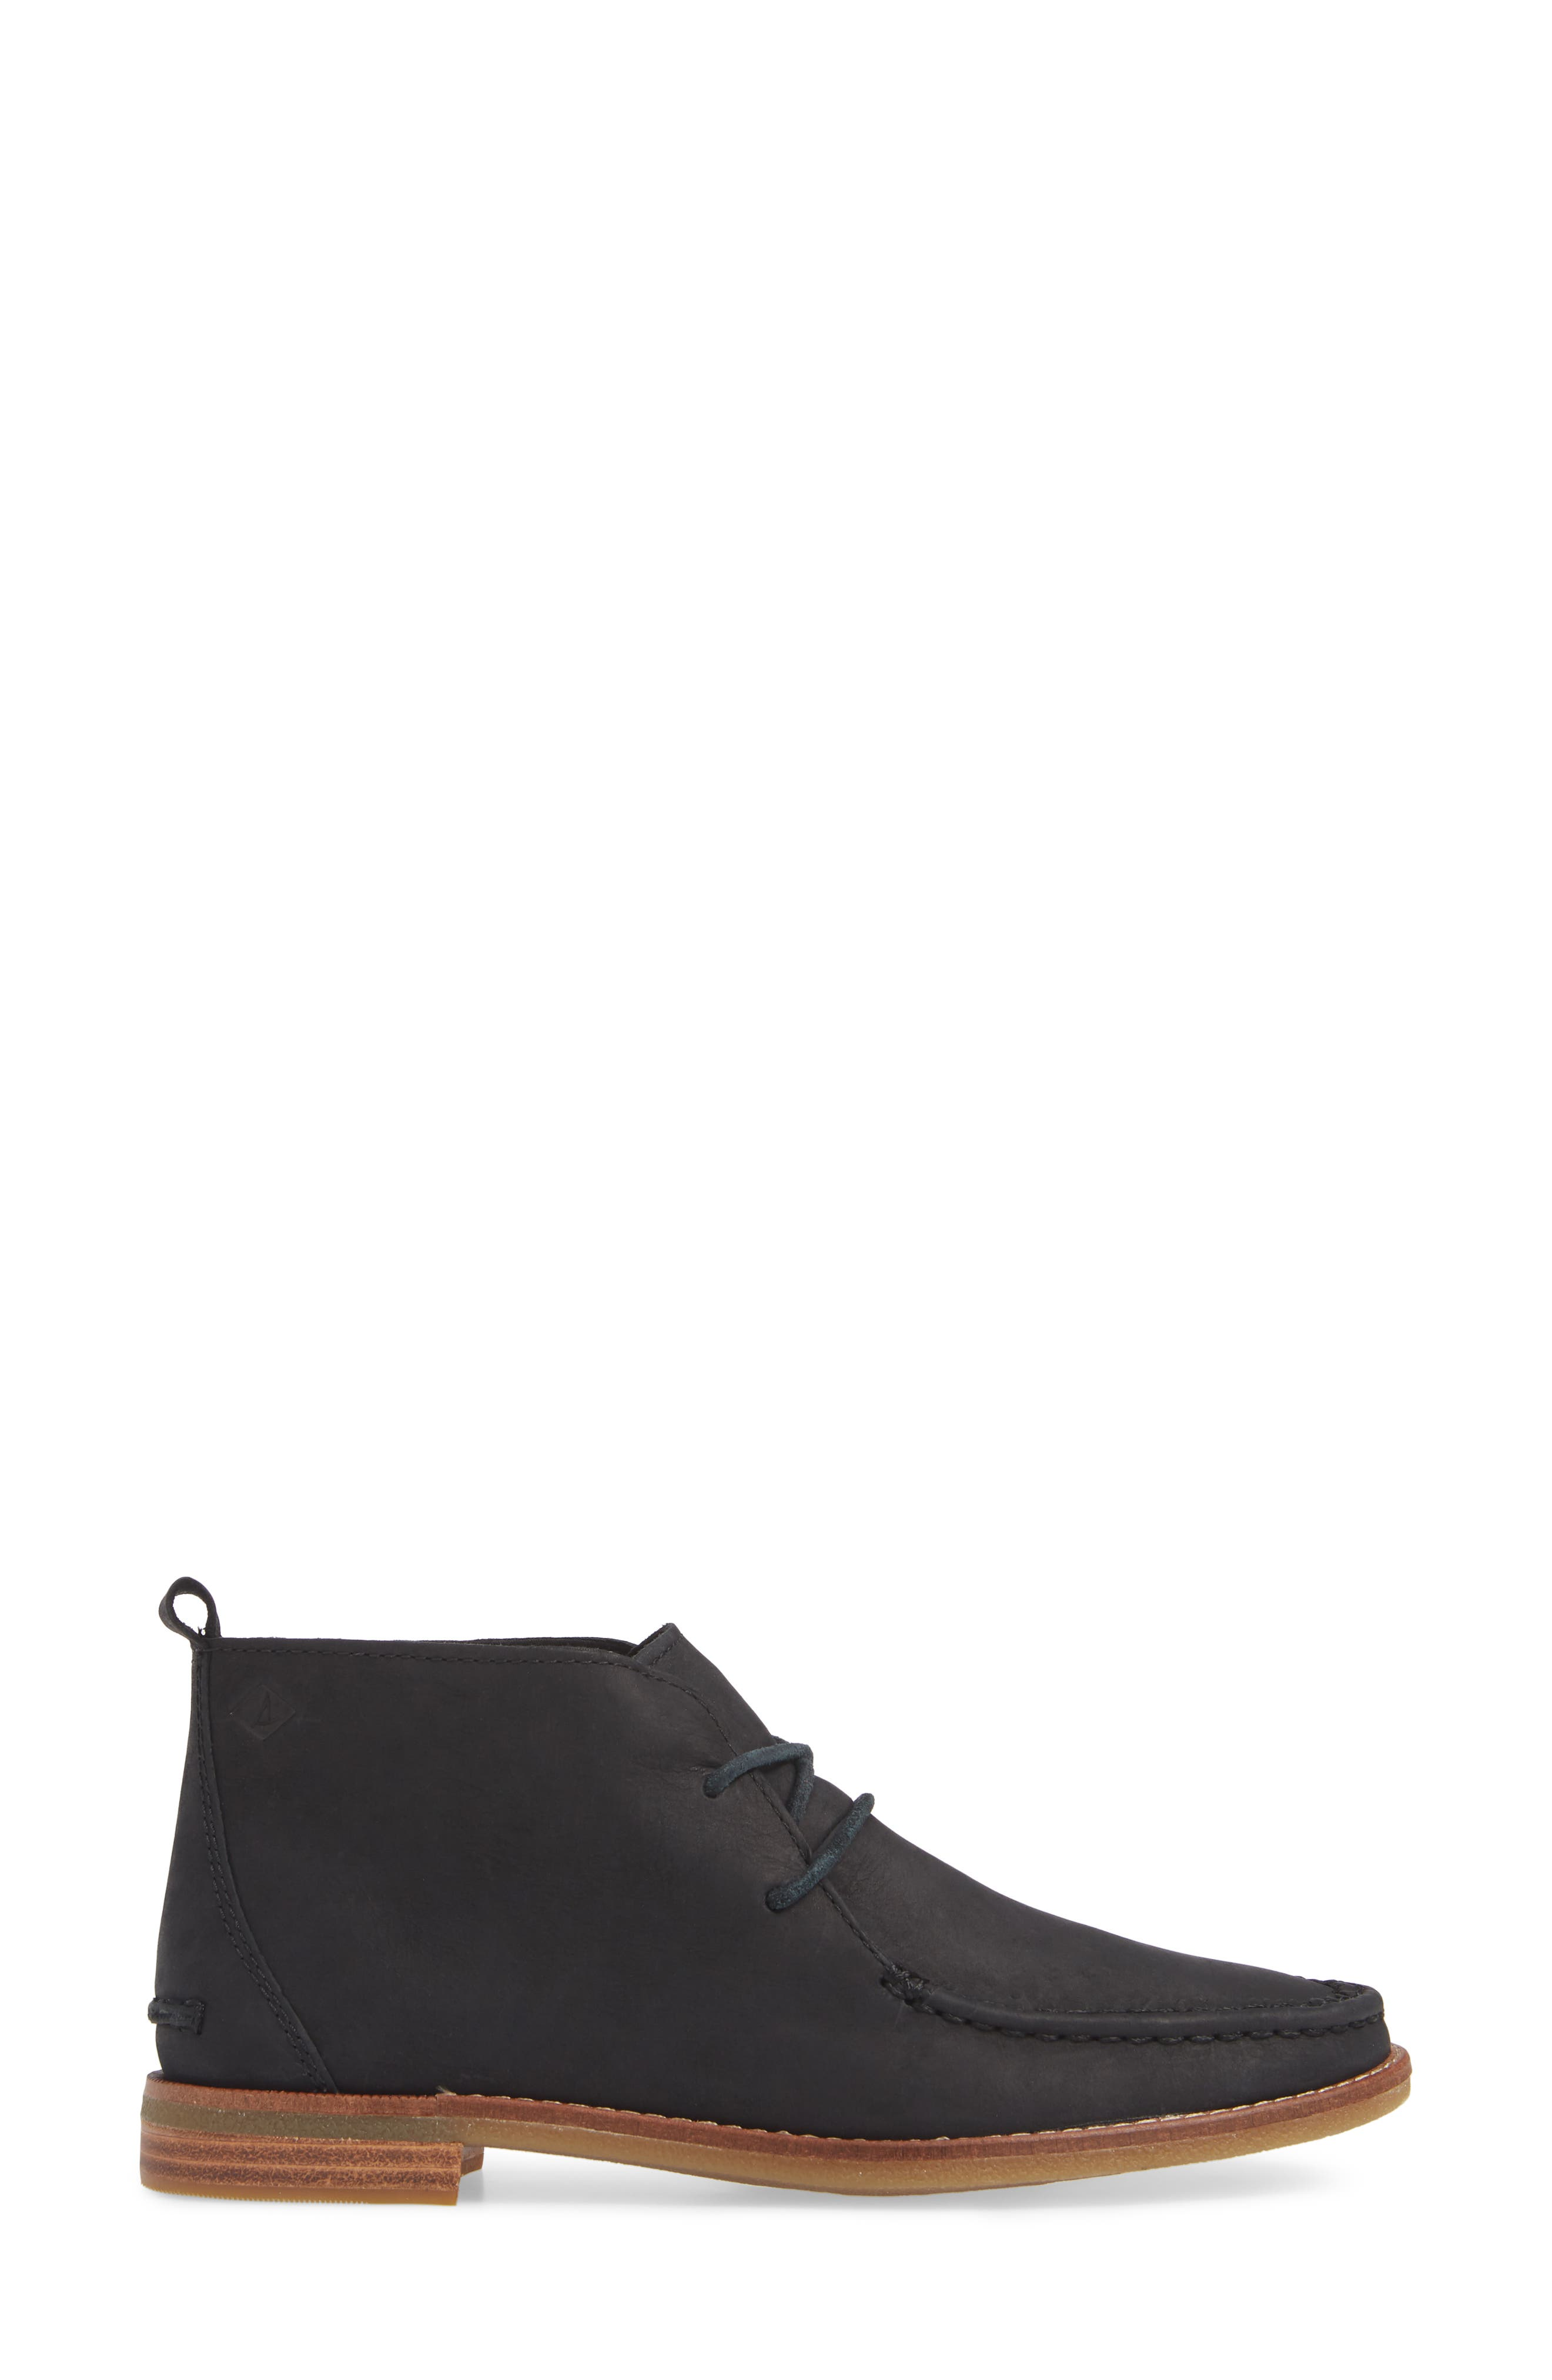 Seaport Tahoe Chukka Bootie,                             Alternate thumbnail 3, color,                             BLACK SUEDE